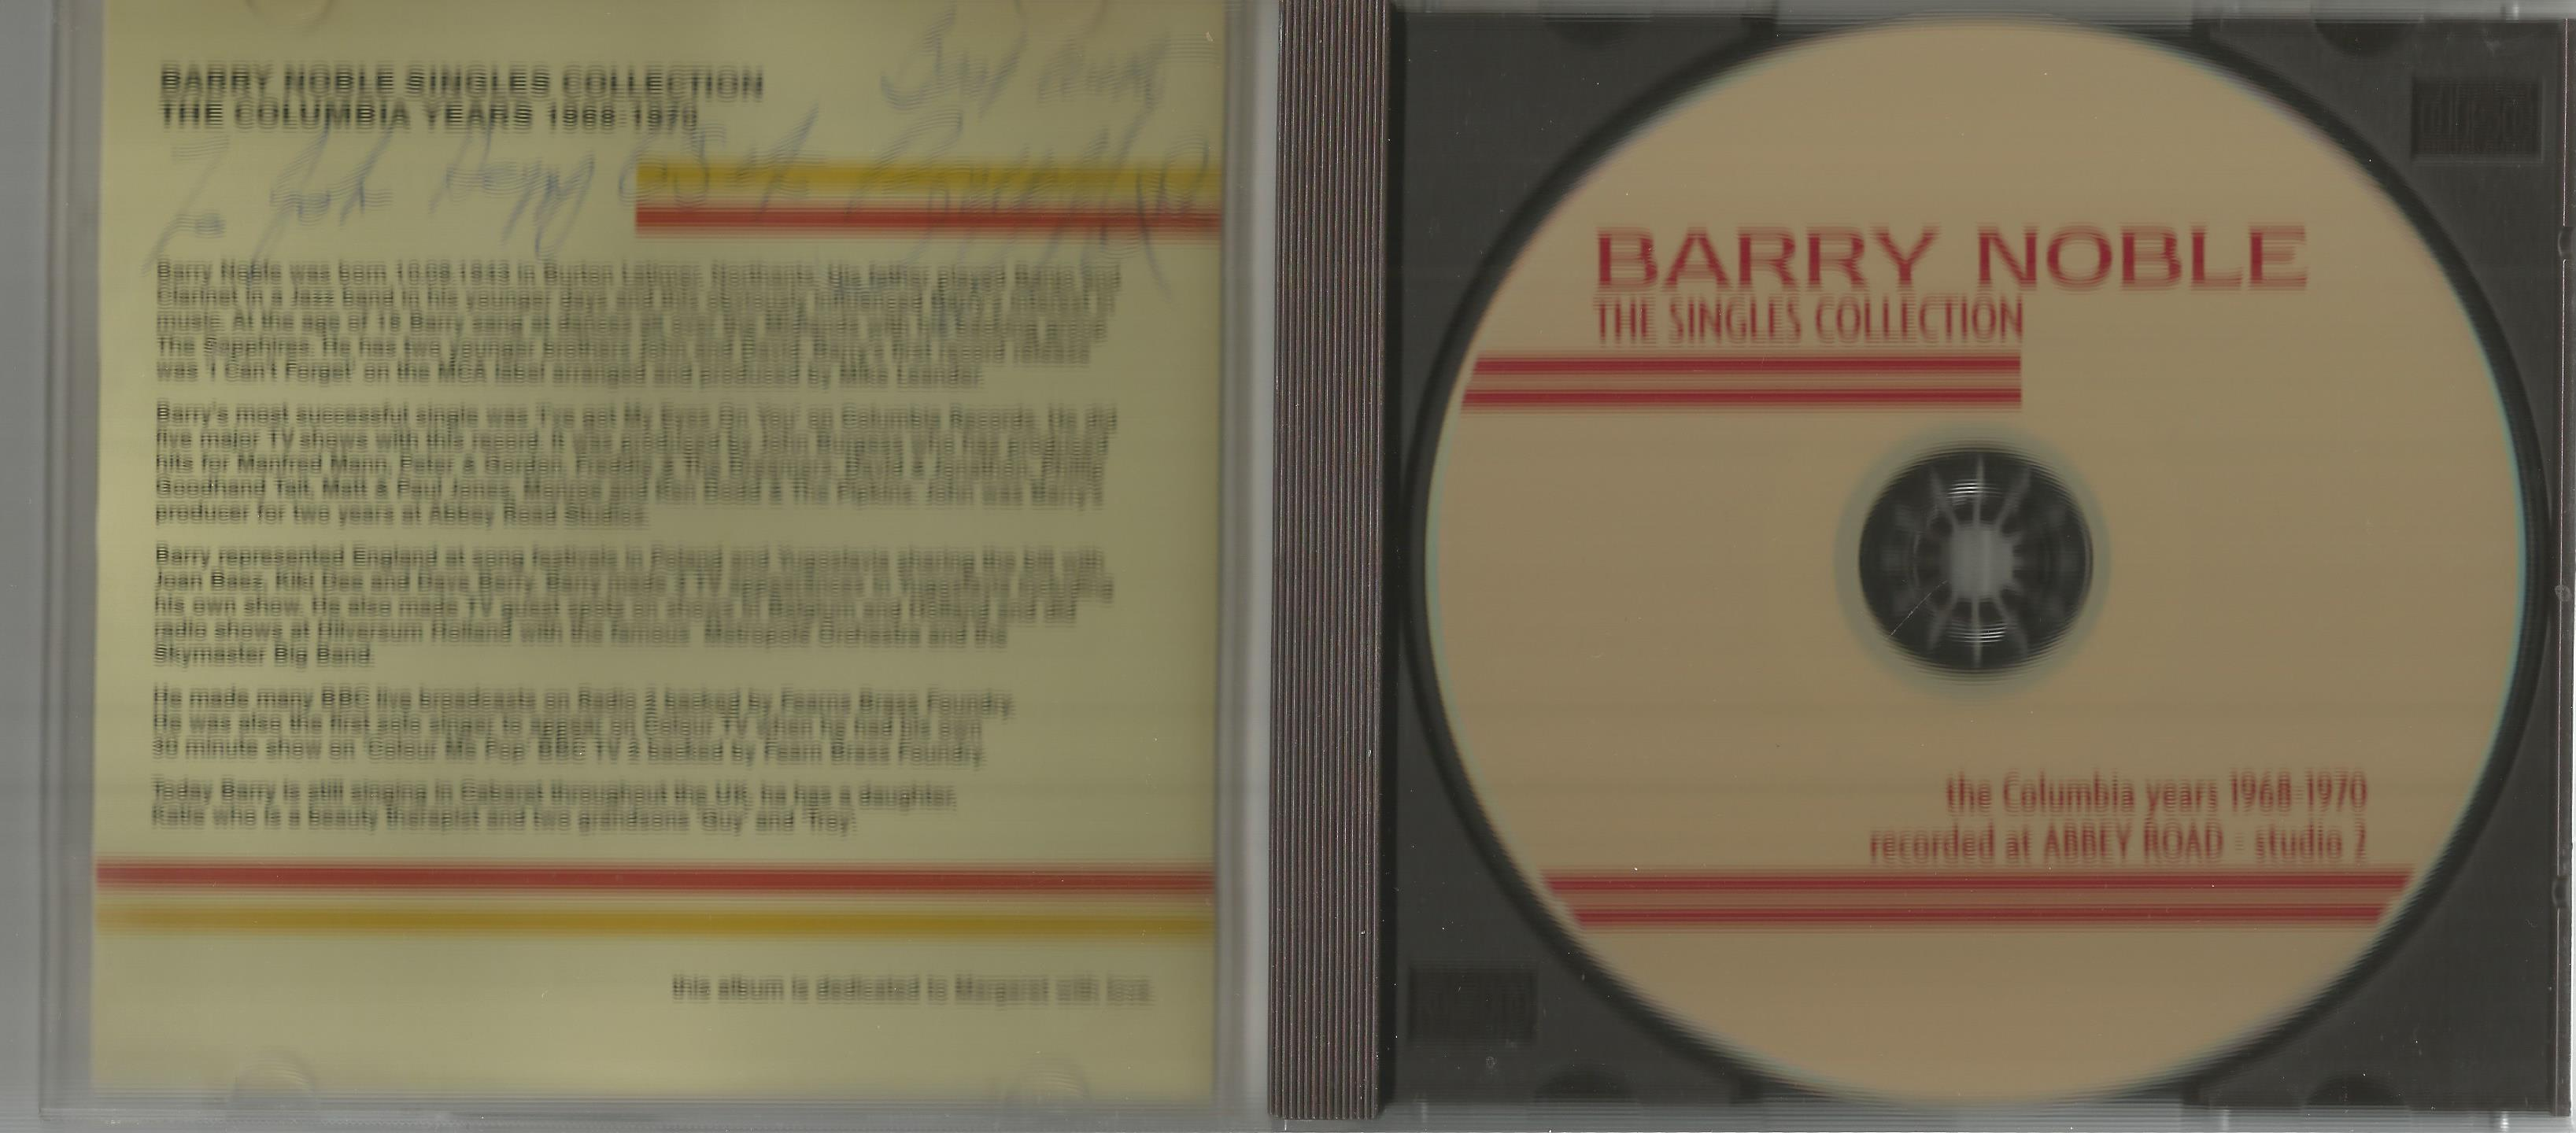 6 Signed CDs Including Michael Graham (Inspirations) Disc Included, Hazel O'Connor (The Bluja - Image 3 of 6